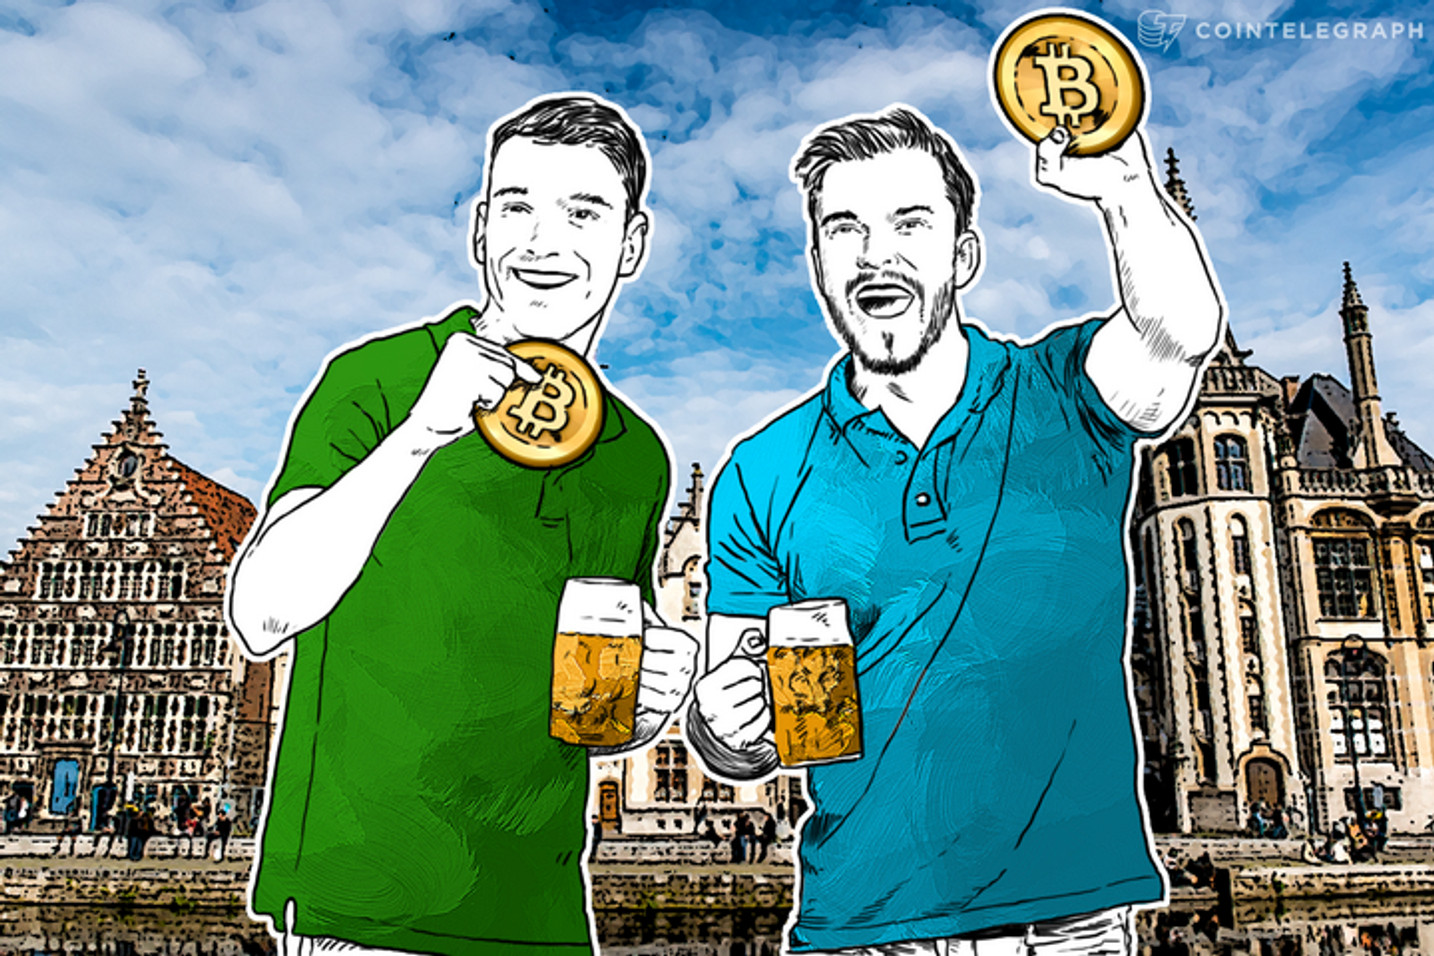 Beer! Belgium! Bitcoins! Ghent to Host a Crypto Crawl